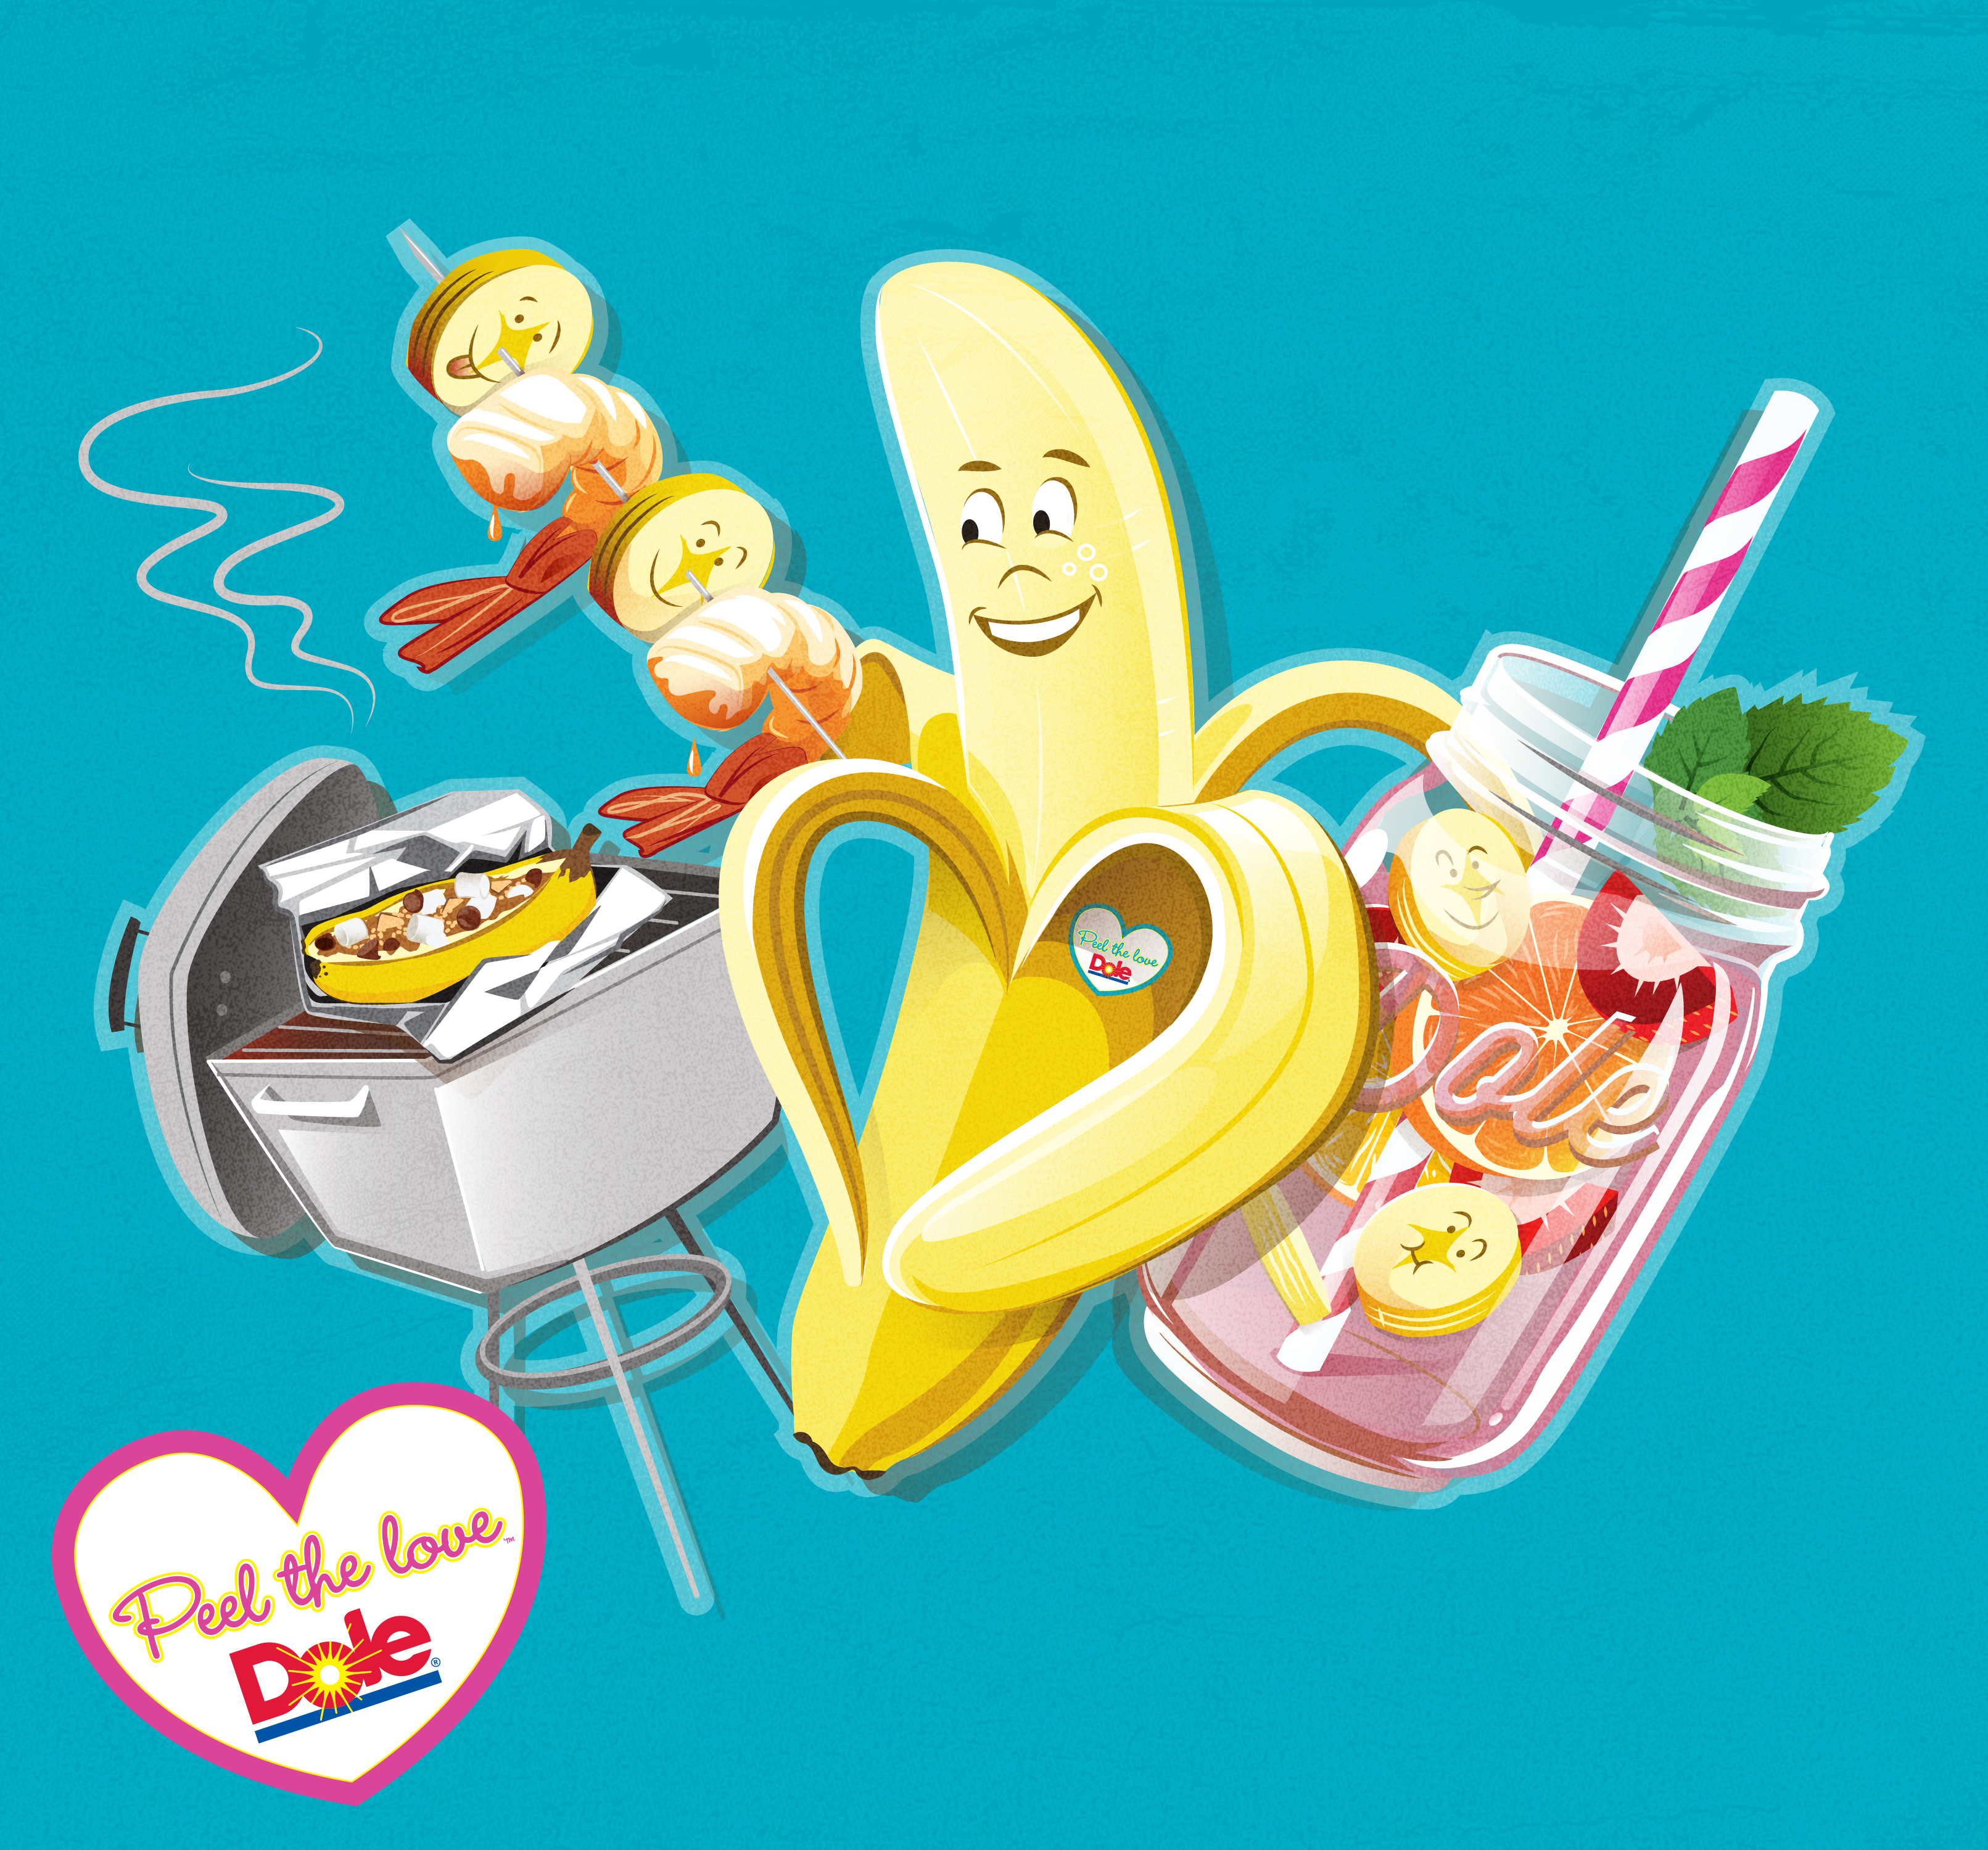 """Dole Will Peel Twice the Love in 2014 with Two """"Banana Cabana"""" Summer Tours (Graphic: Business Wire)"""